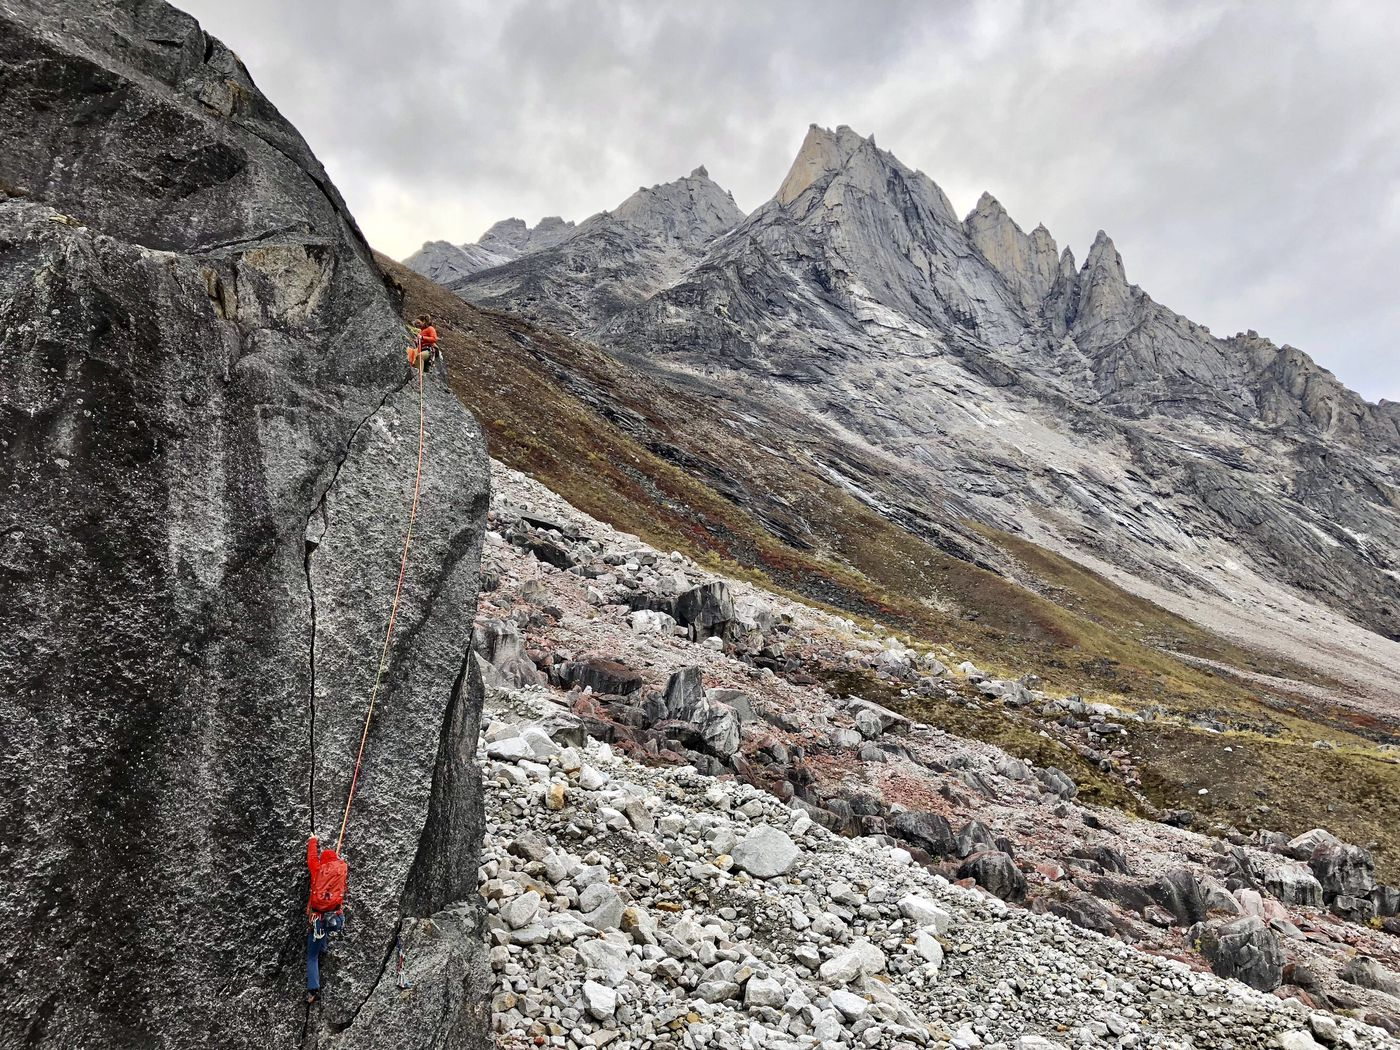 Andi Schweers, top, and Steven Claggett climb a boulder, featuring Caliban in the background, in the Arrigetch Peaks on Friday, Aug, 31, 2018. (Jussi Ruottinen)